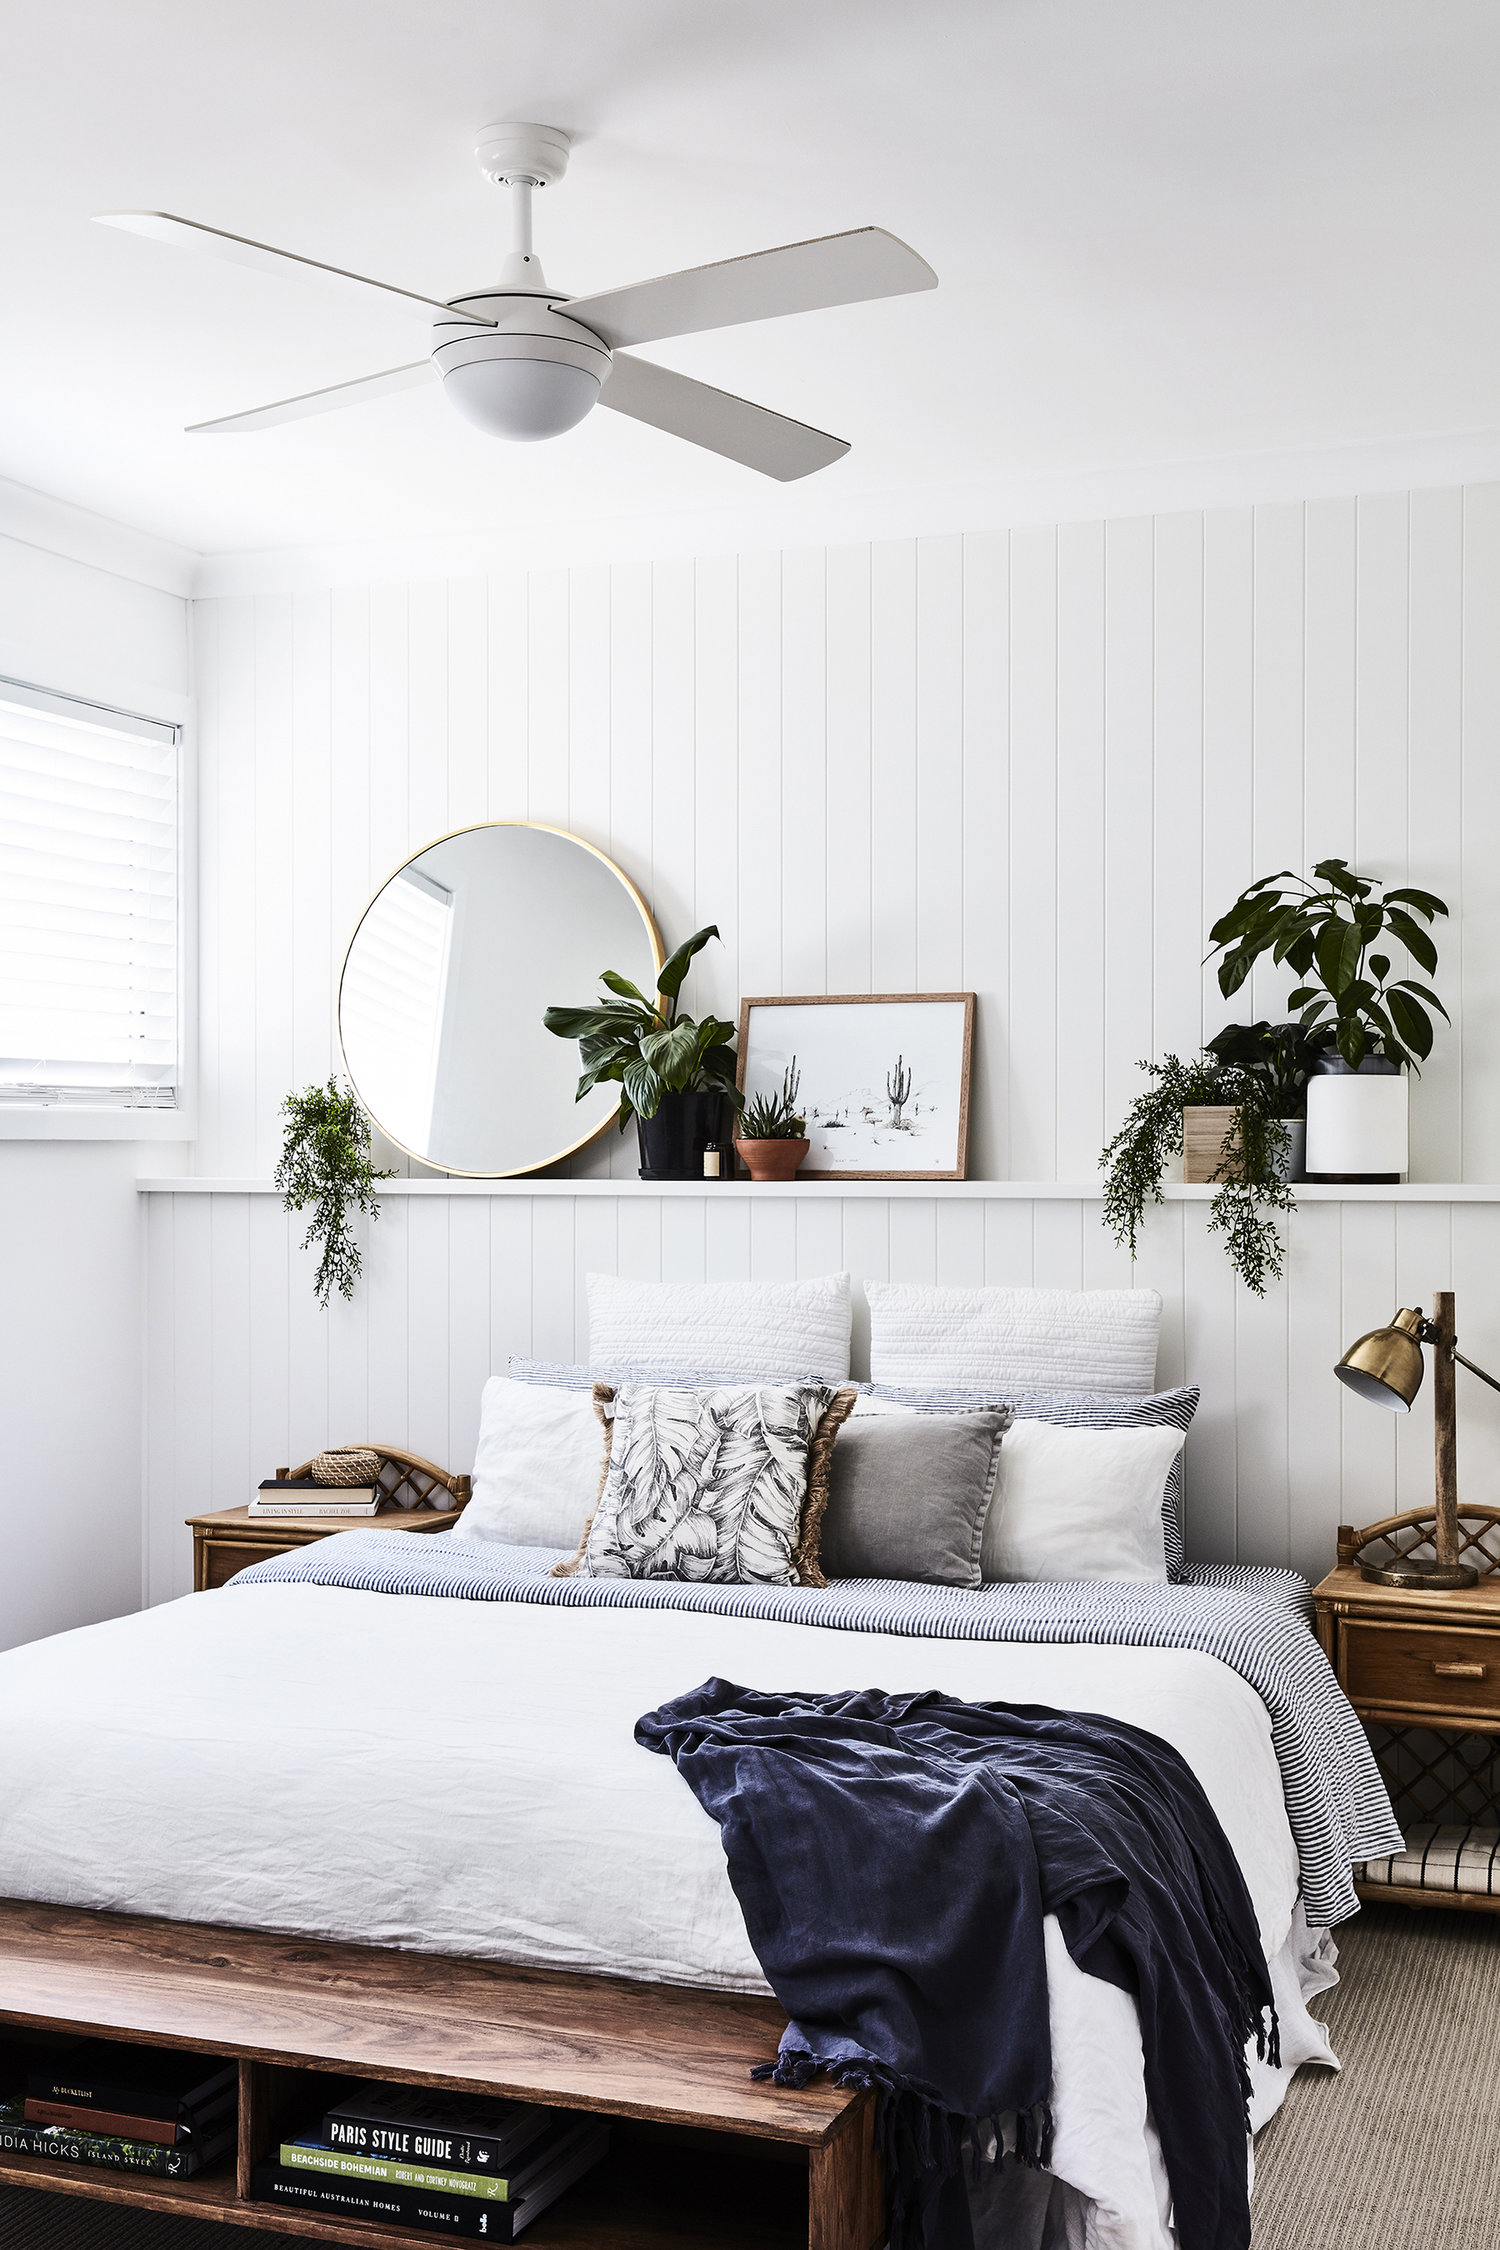 Floating shelf in bedroom with plants